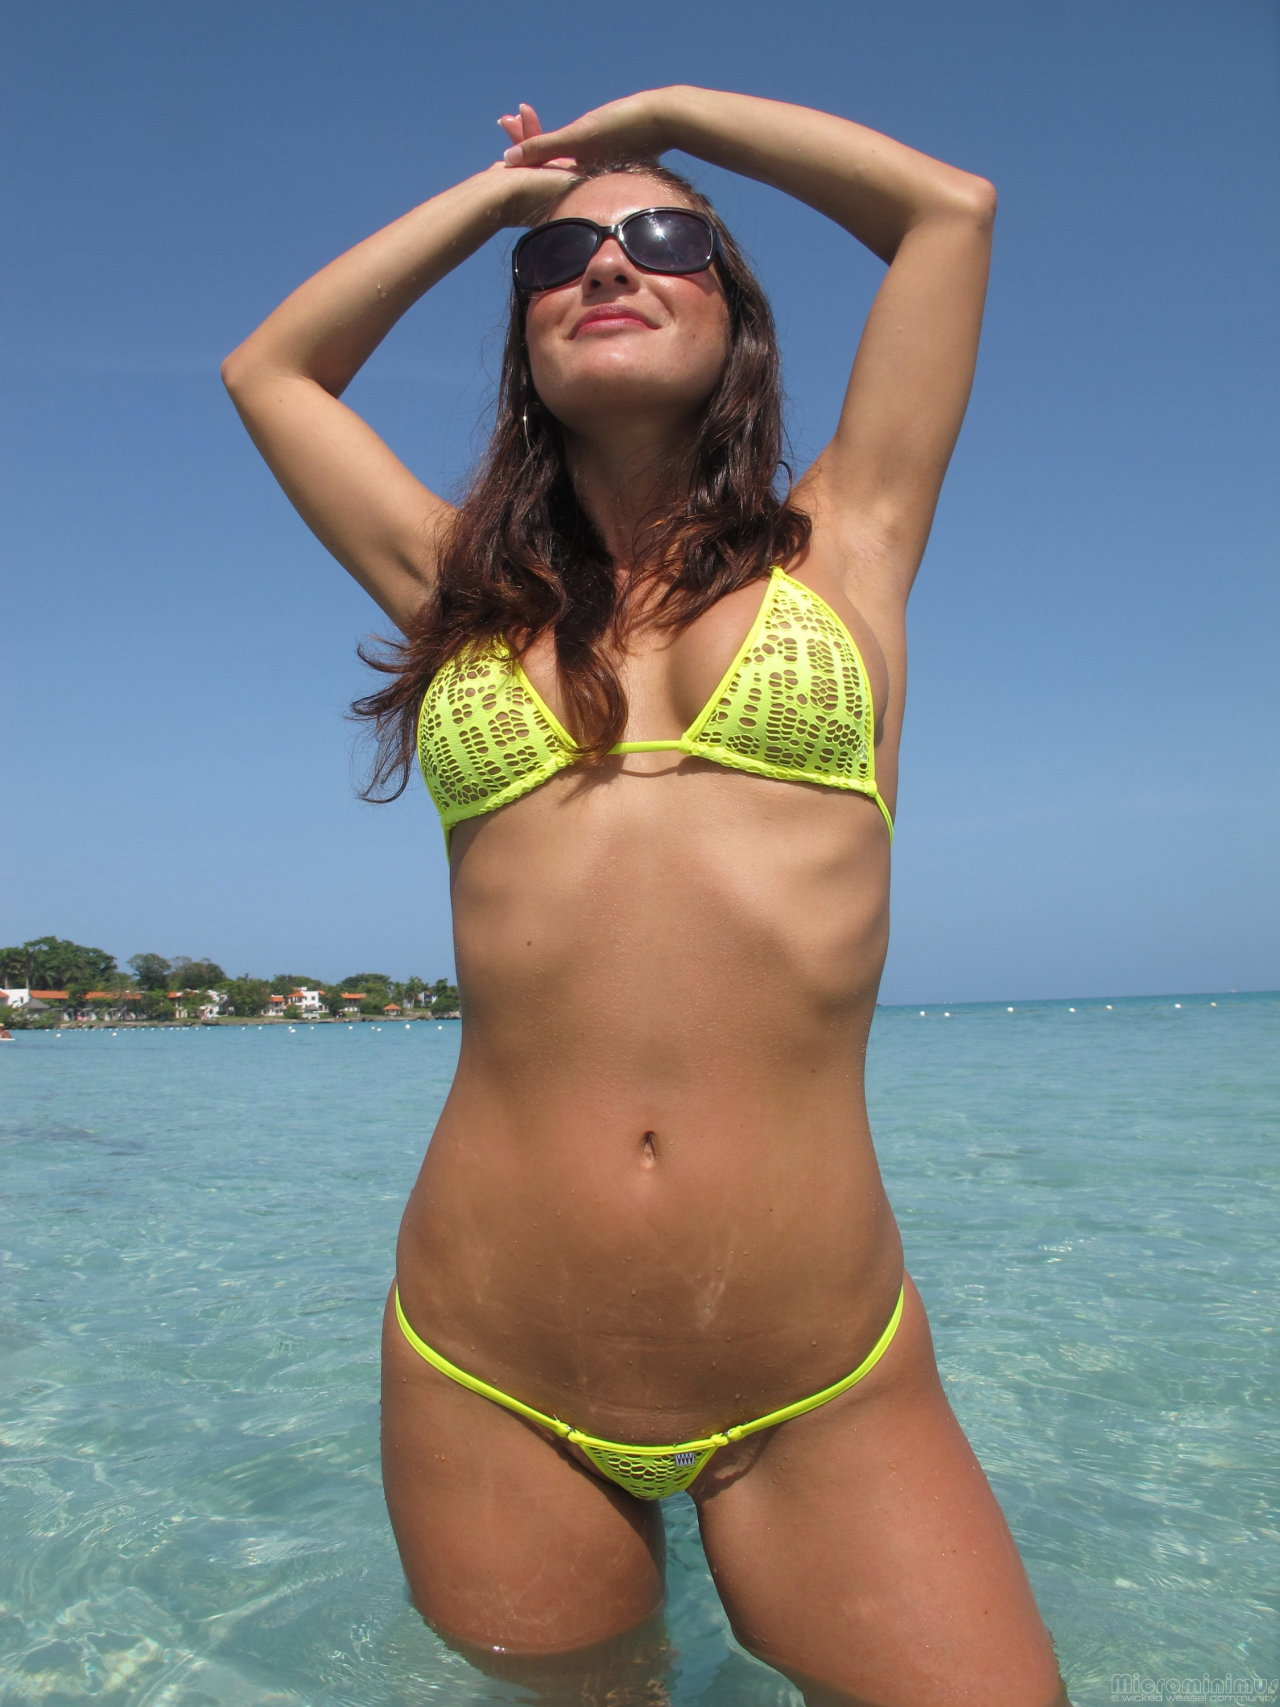 Bikini see through bathing suits tumblr